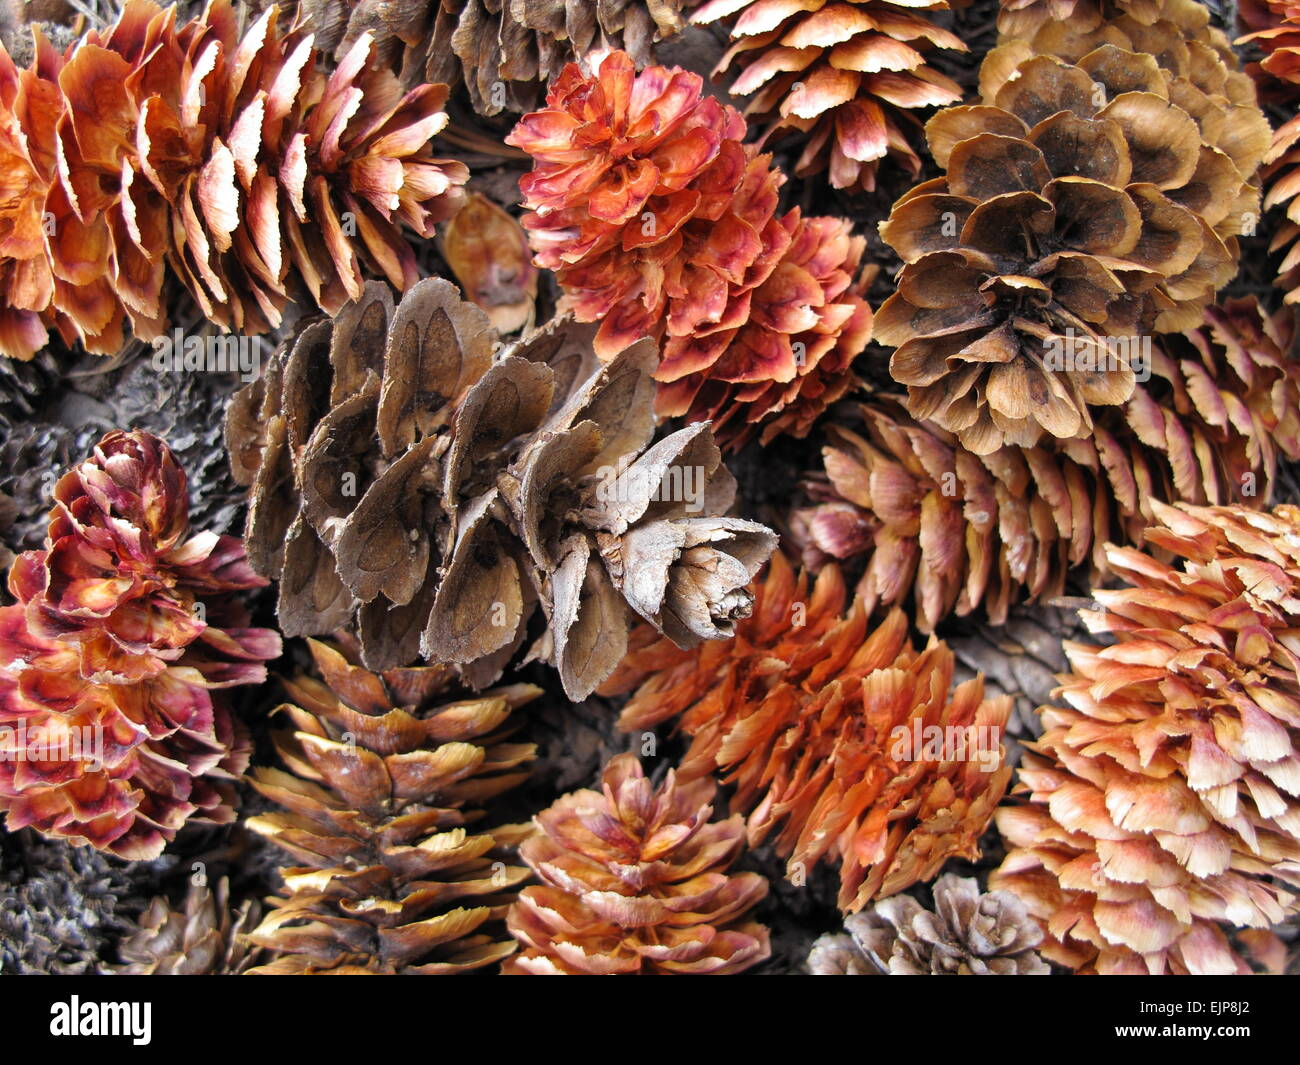 close-up pile of colorful pine cones - Stock Image